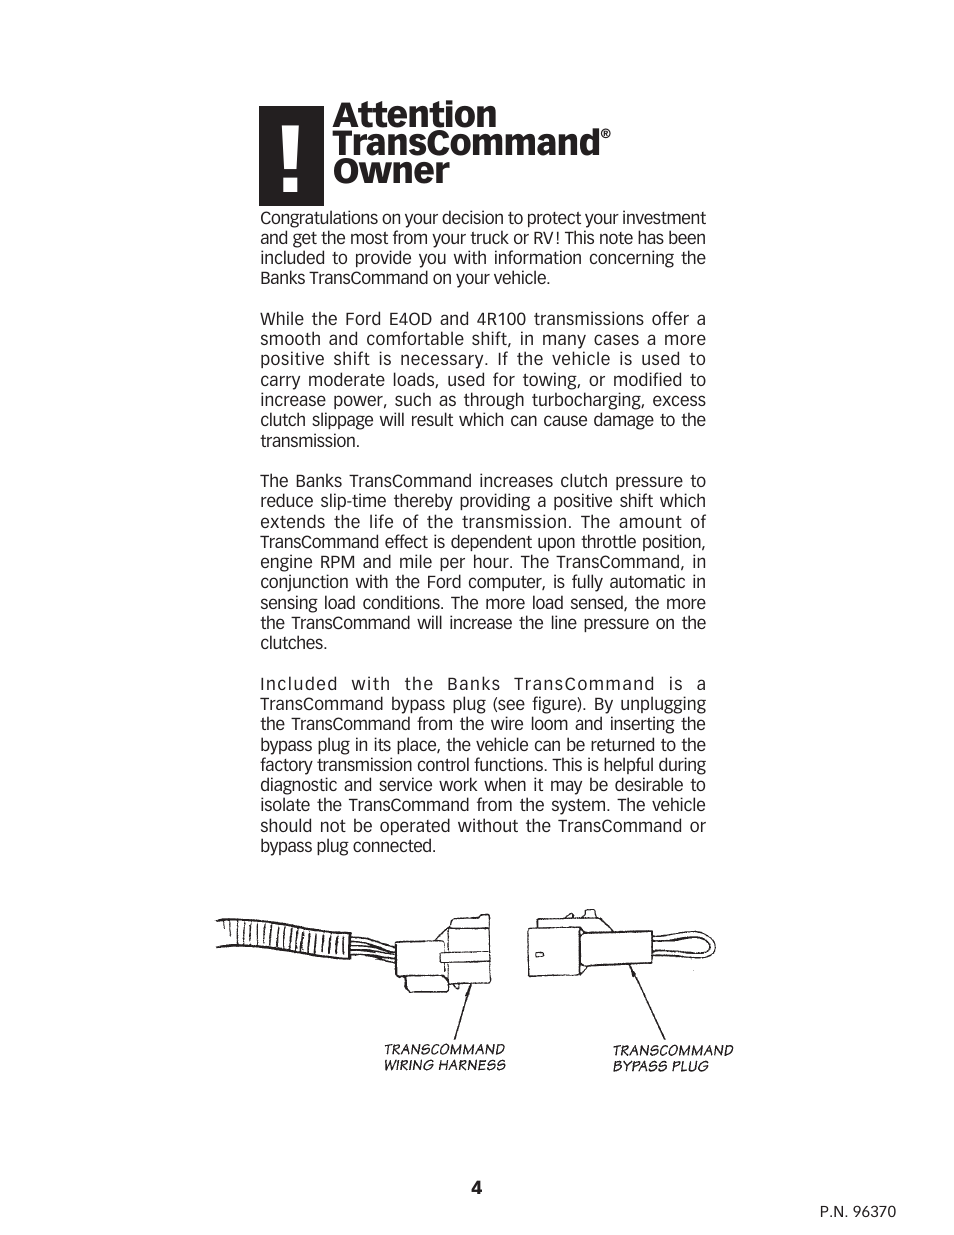 Attention Transcommand Owner Banks Power Ford Trucks Gas 87 E4od Transmission Wiring Harness 97 75l Efi Powertrain For E40d 4r100 Transmissions User Manual Page 4